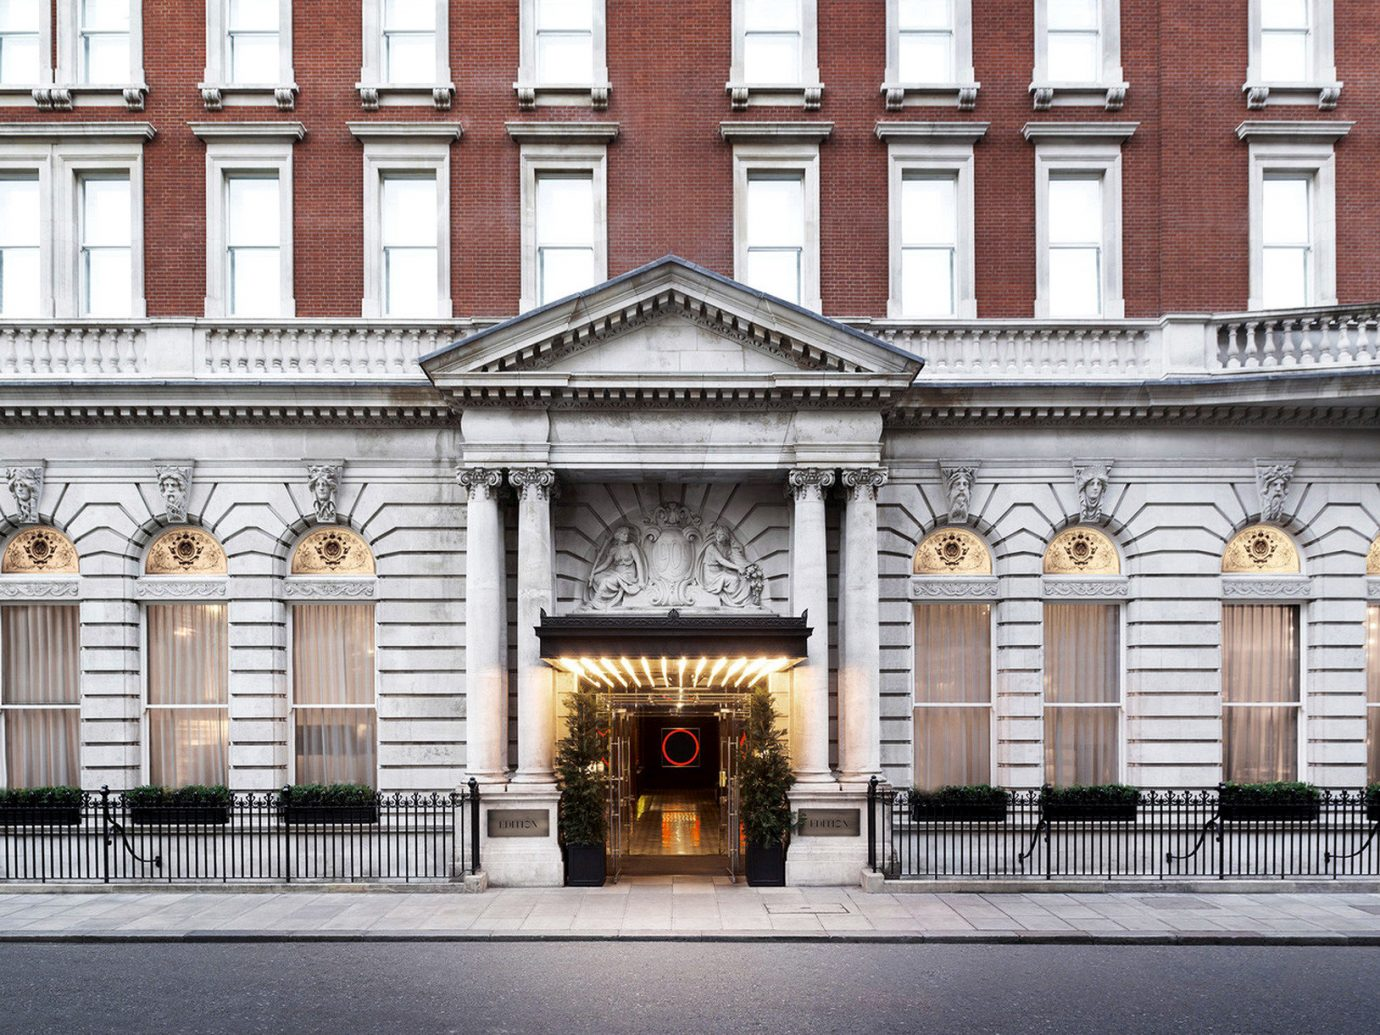 Architecture Boutique Hotels Buildings Exterior Historic London Romantic Hotels building outdoor facade palace government building tourist attraction synagogue tall stone